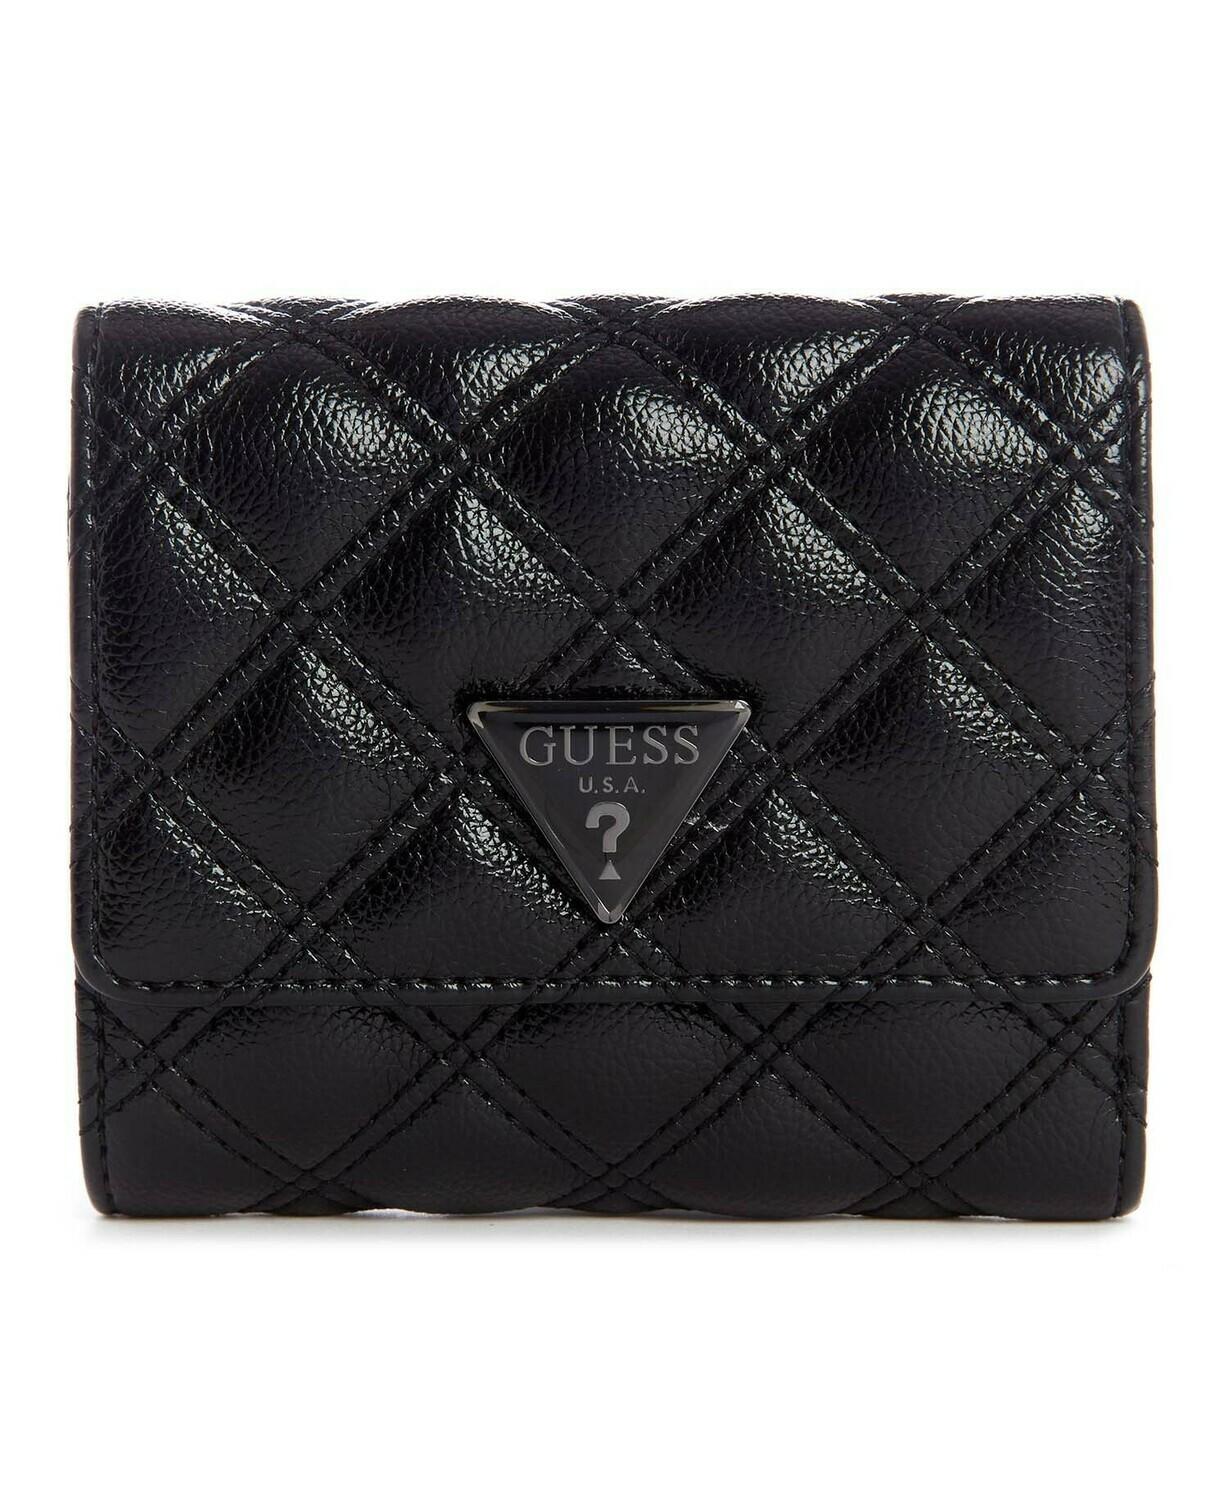 GUESS WALLET CESSILY SMALL